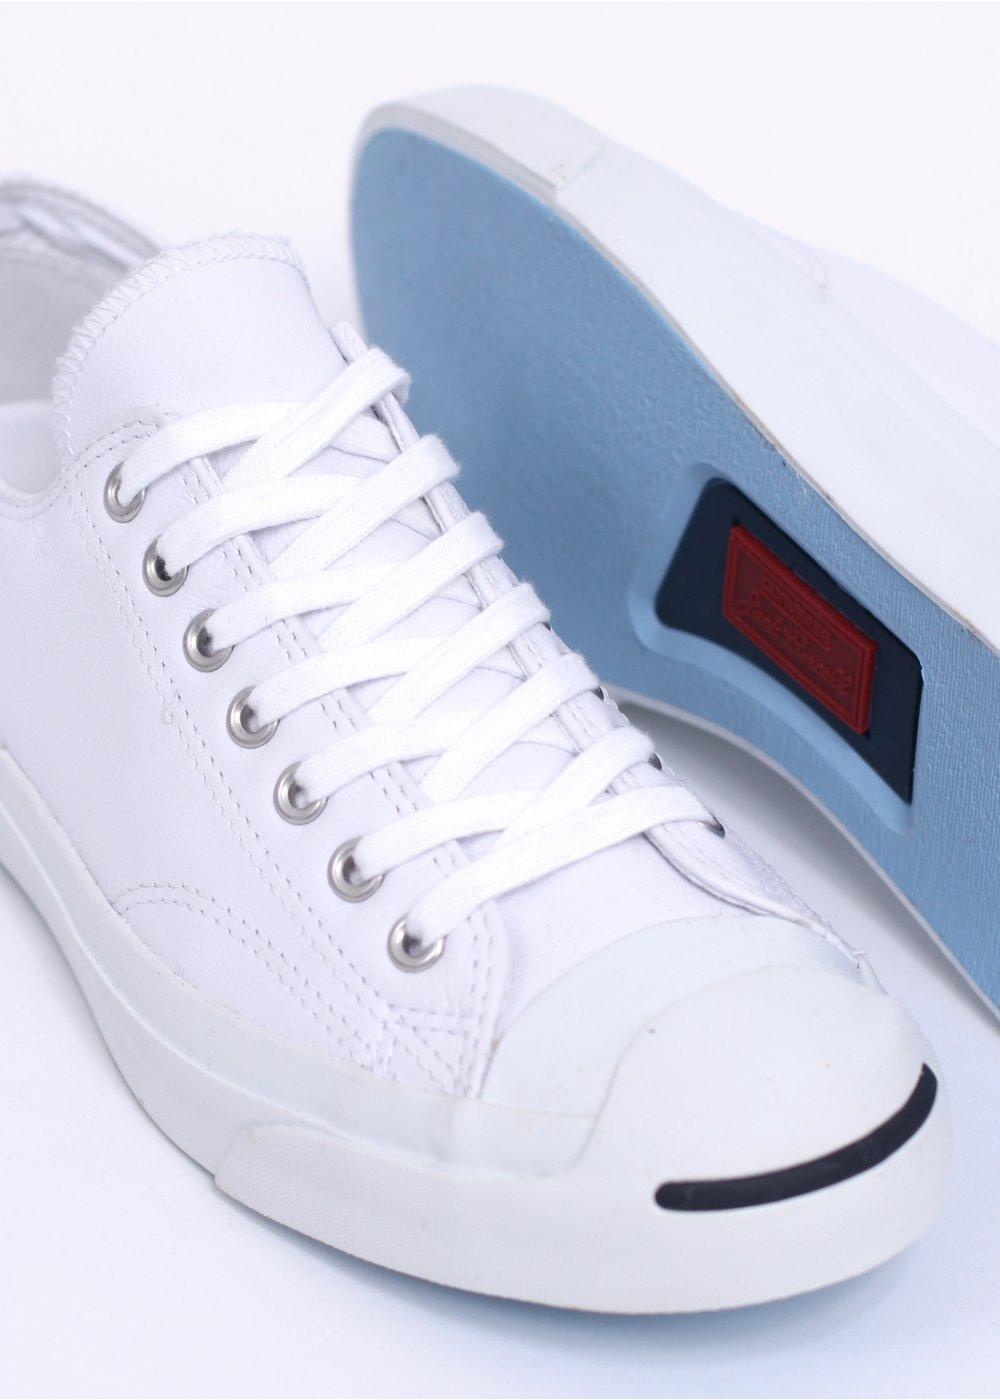 Jack Trainers Leather Ox Navy Converse Purcell White 80wXOPkn